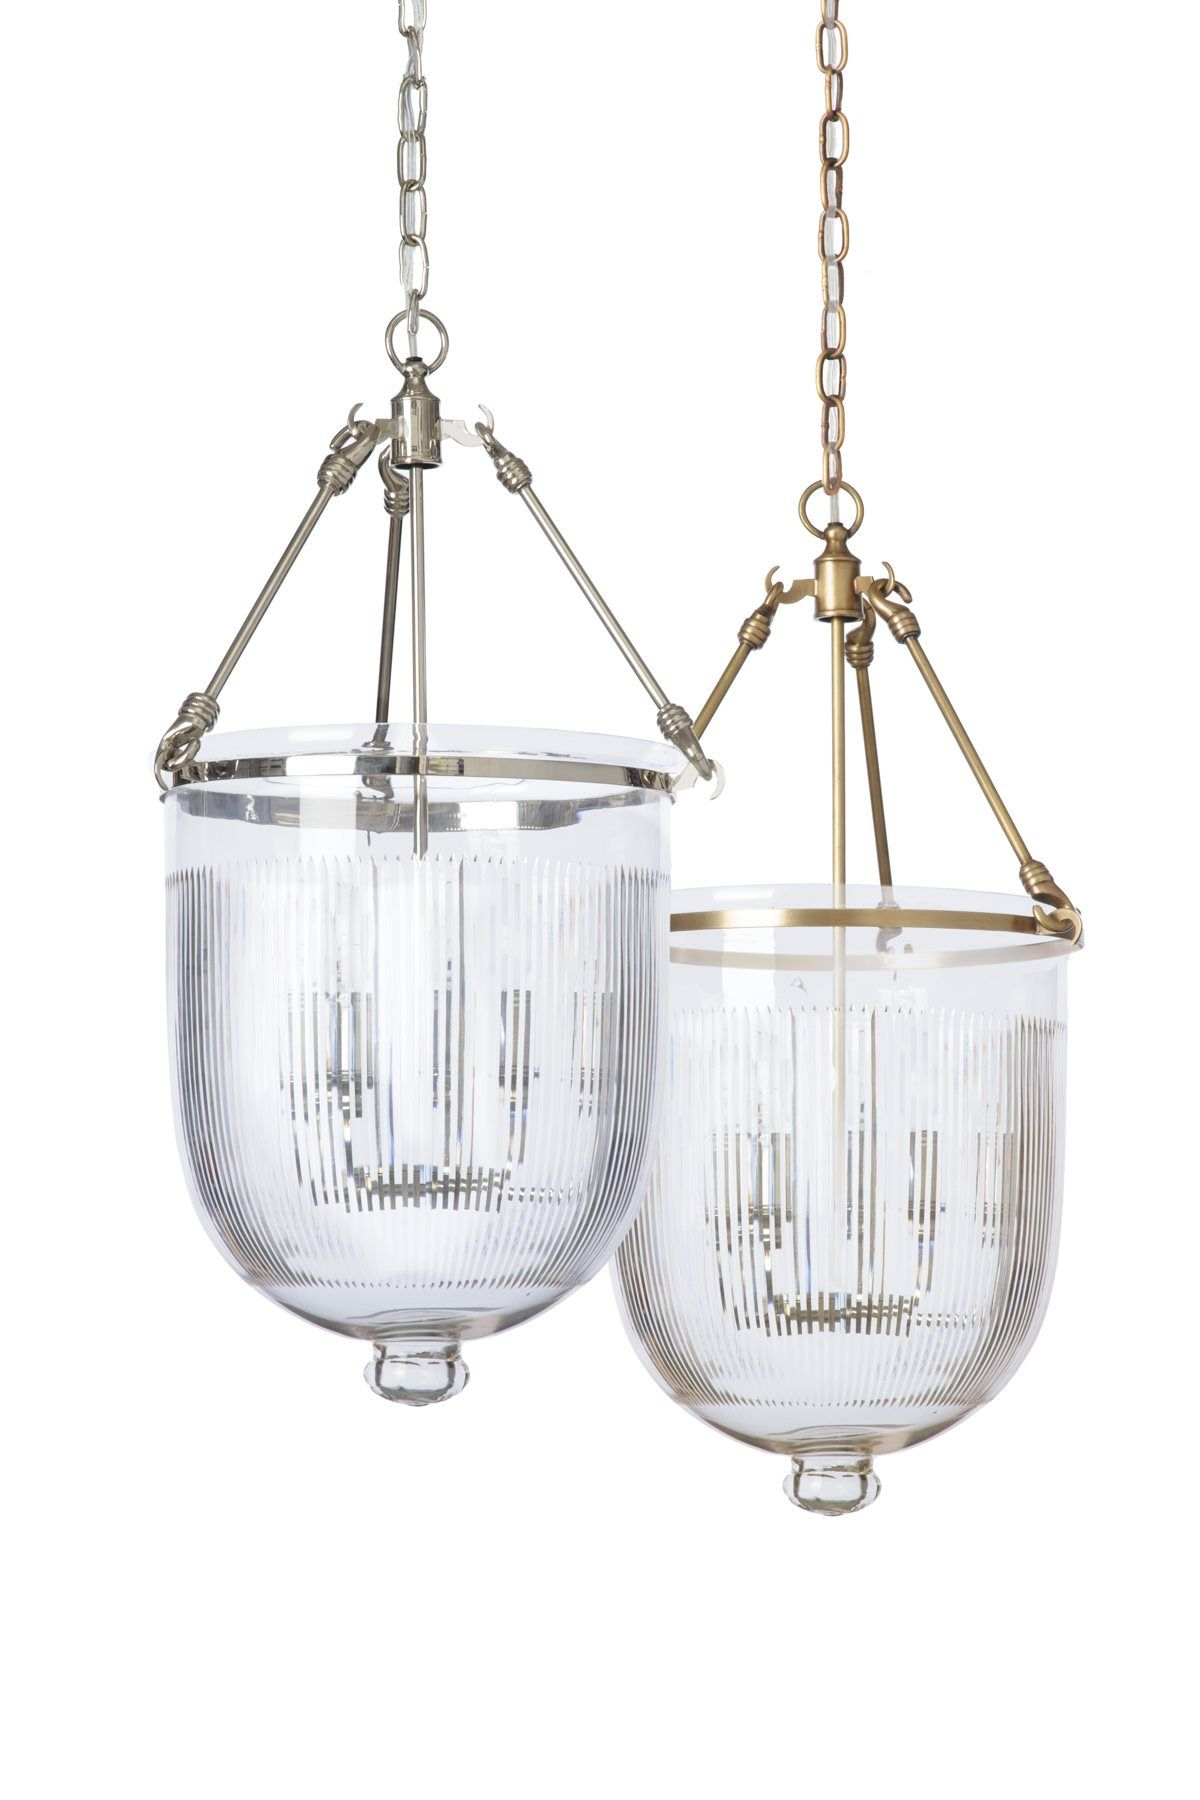 South shore decorating barbara cosgrove bc905 bell jar south shore decorating barbara cosgrove bc905 bell jar traditional hanging light in antique brass finish aloadofball Choice Image